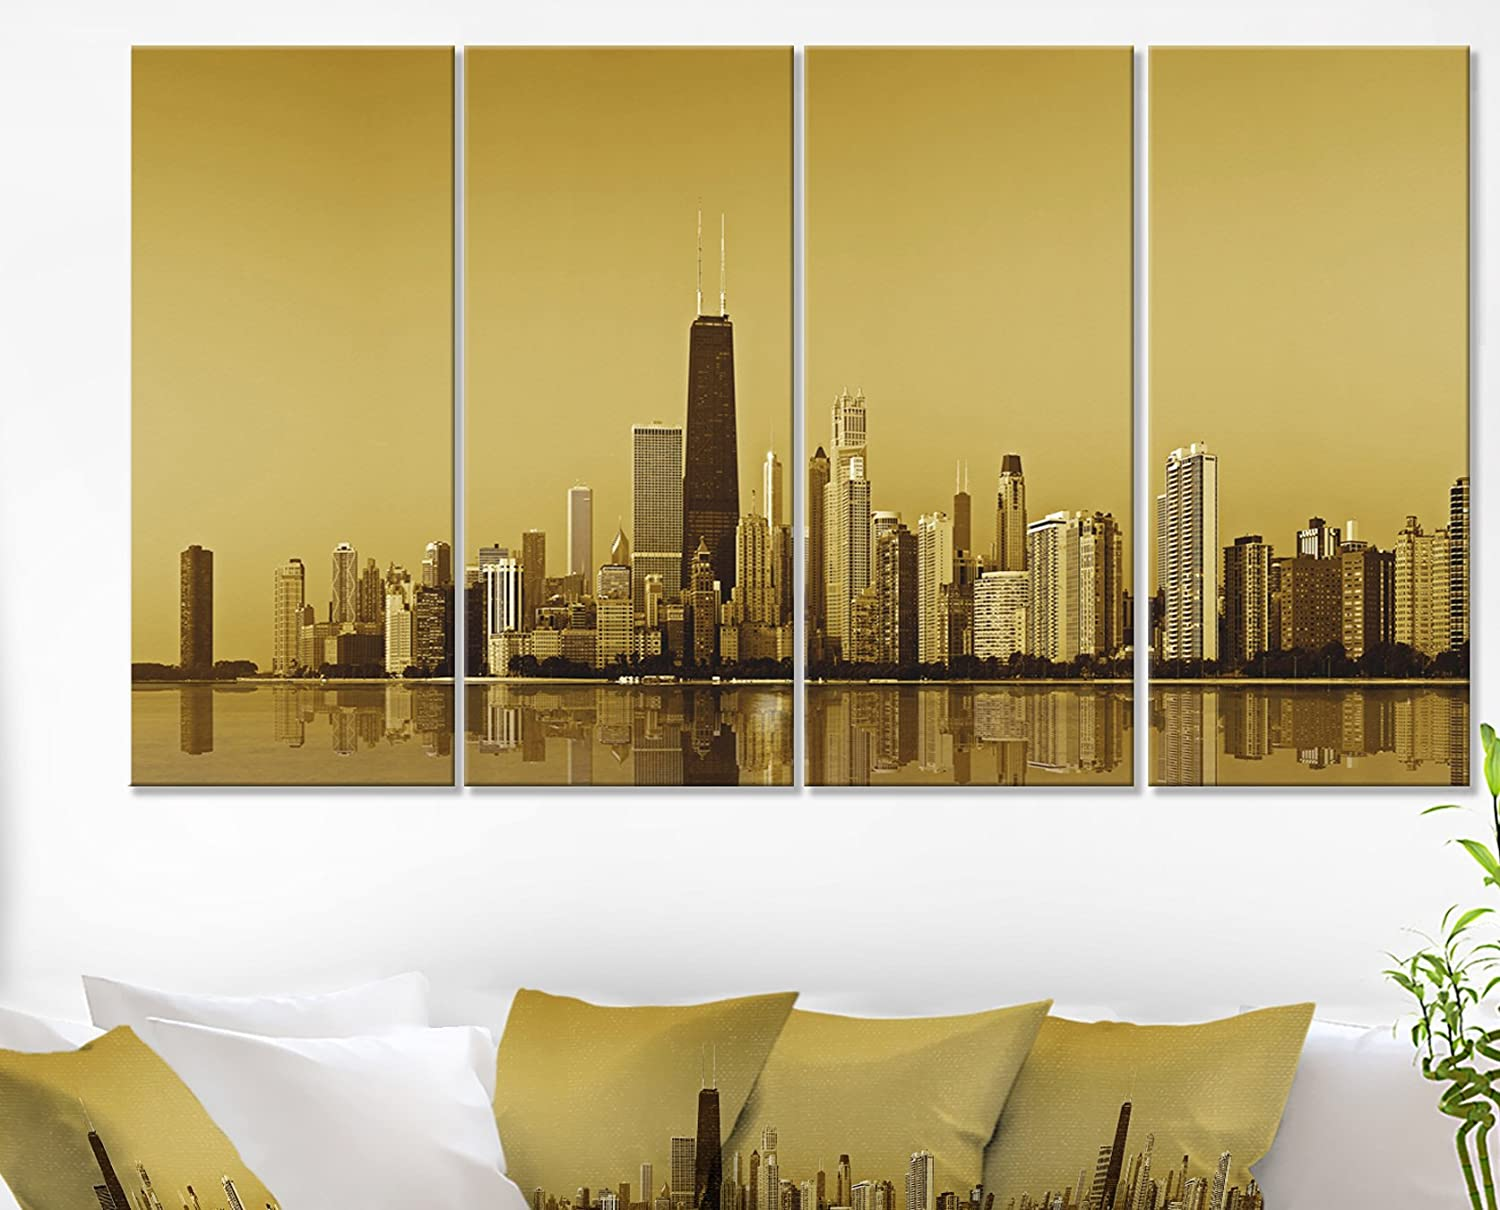 Amazon.com: Designart Chicago Gold Coast with Skyscrapers ...